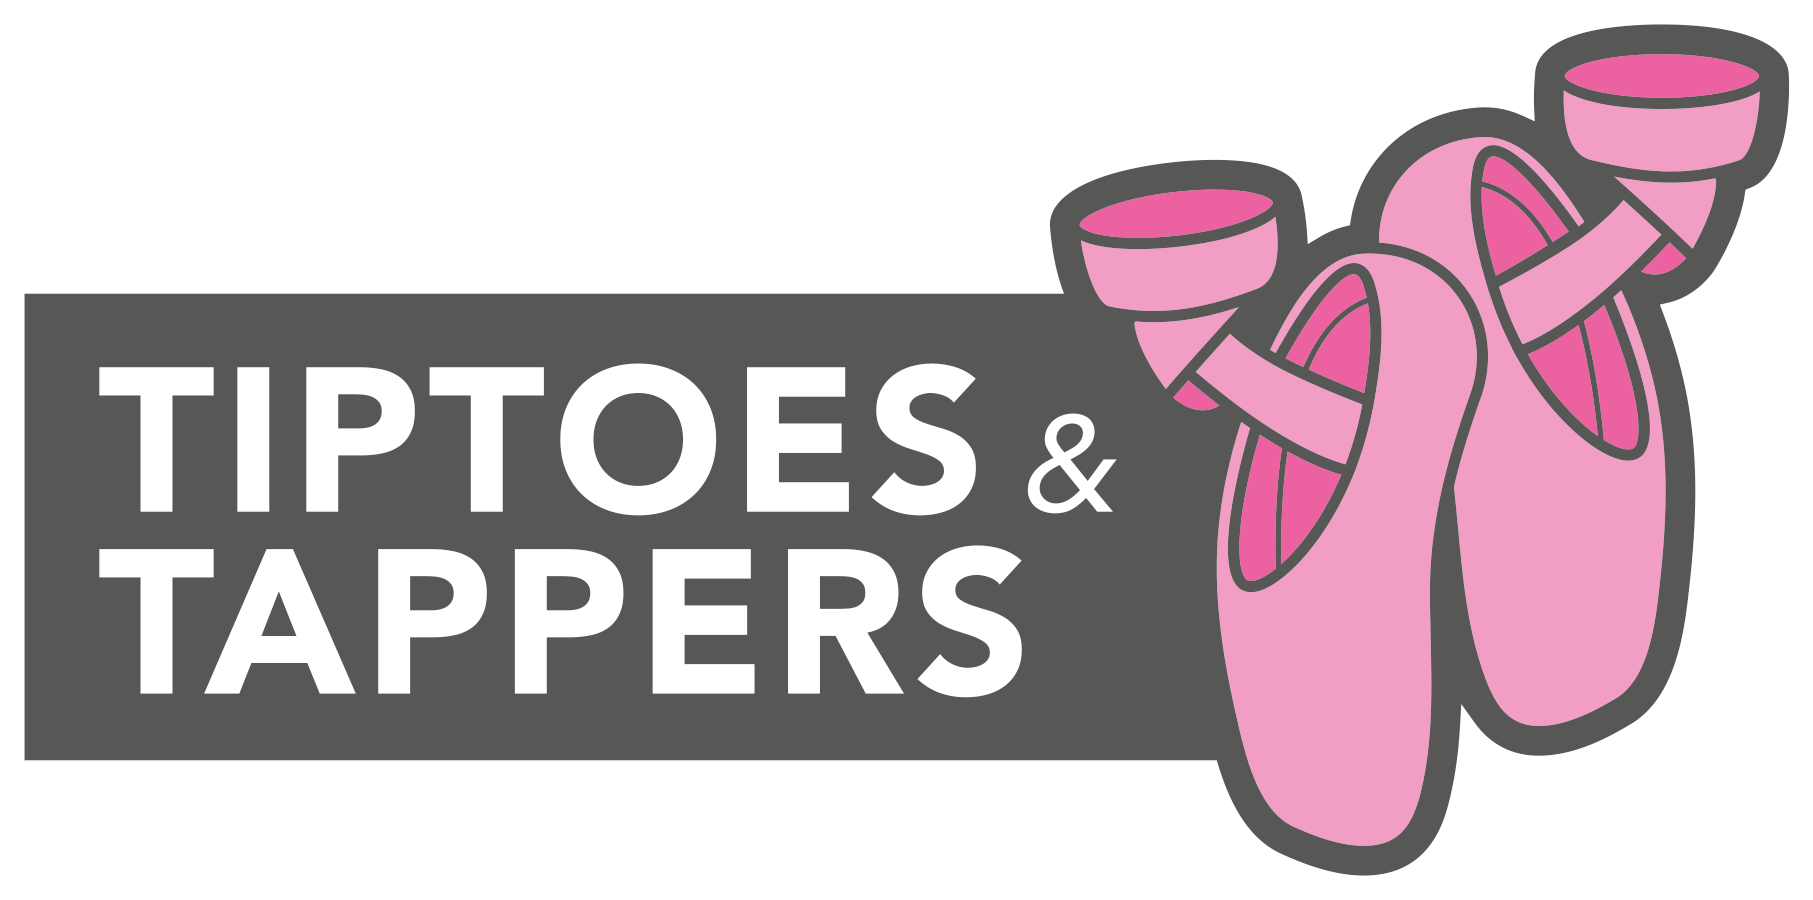 Tiptoes And Tappers